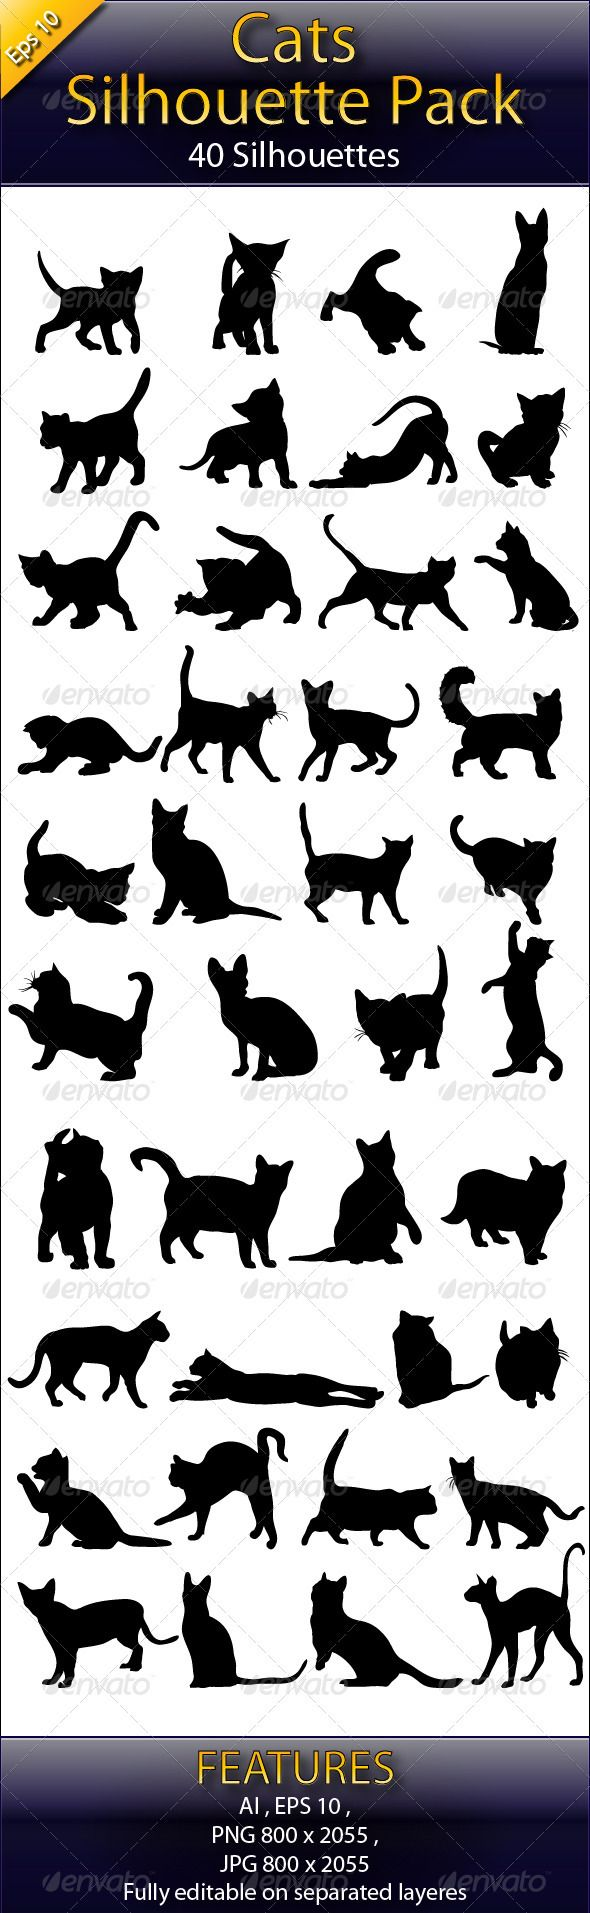 Cats Silhouette Big Pack #GraphicRiver 40 cats vector made in Illustrator (AI) .File its fully editable or customizable, nicely layered . Color is changeable also and size is changeable. Format's included: EPS , Ai , JPG , PNG and here is Cats Silhouettes Big Pack 2: graphicriver /item/cats-silhouettes-big-pack-2/3393009?WT.ac=portfolio&WT.seg_1=portfolio&WT.z_author=Marjan2 free counters If you buy it rate pls Created: 10September12 GraphicsFilesIncluded: TransparentPNG #JPGImage #VectorEPS…